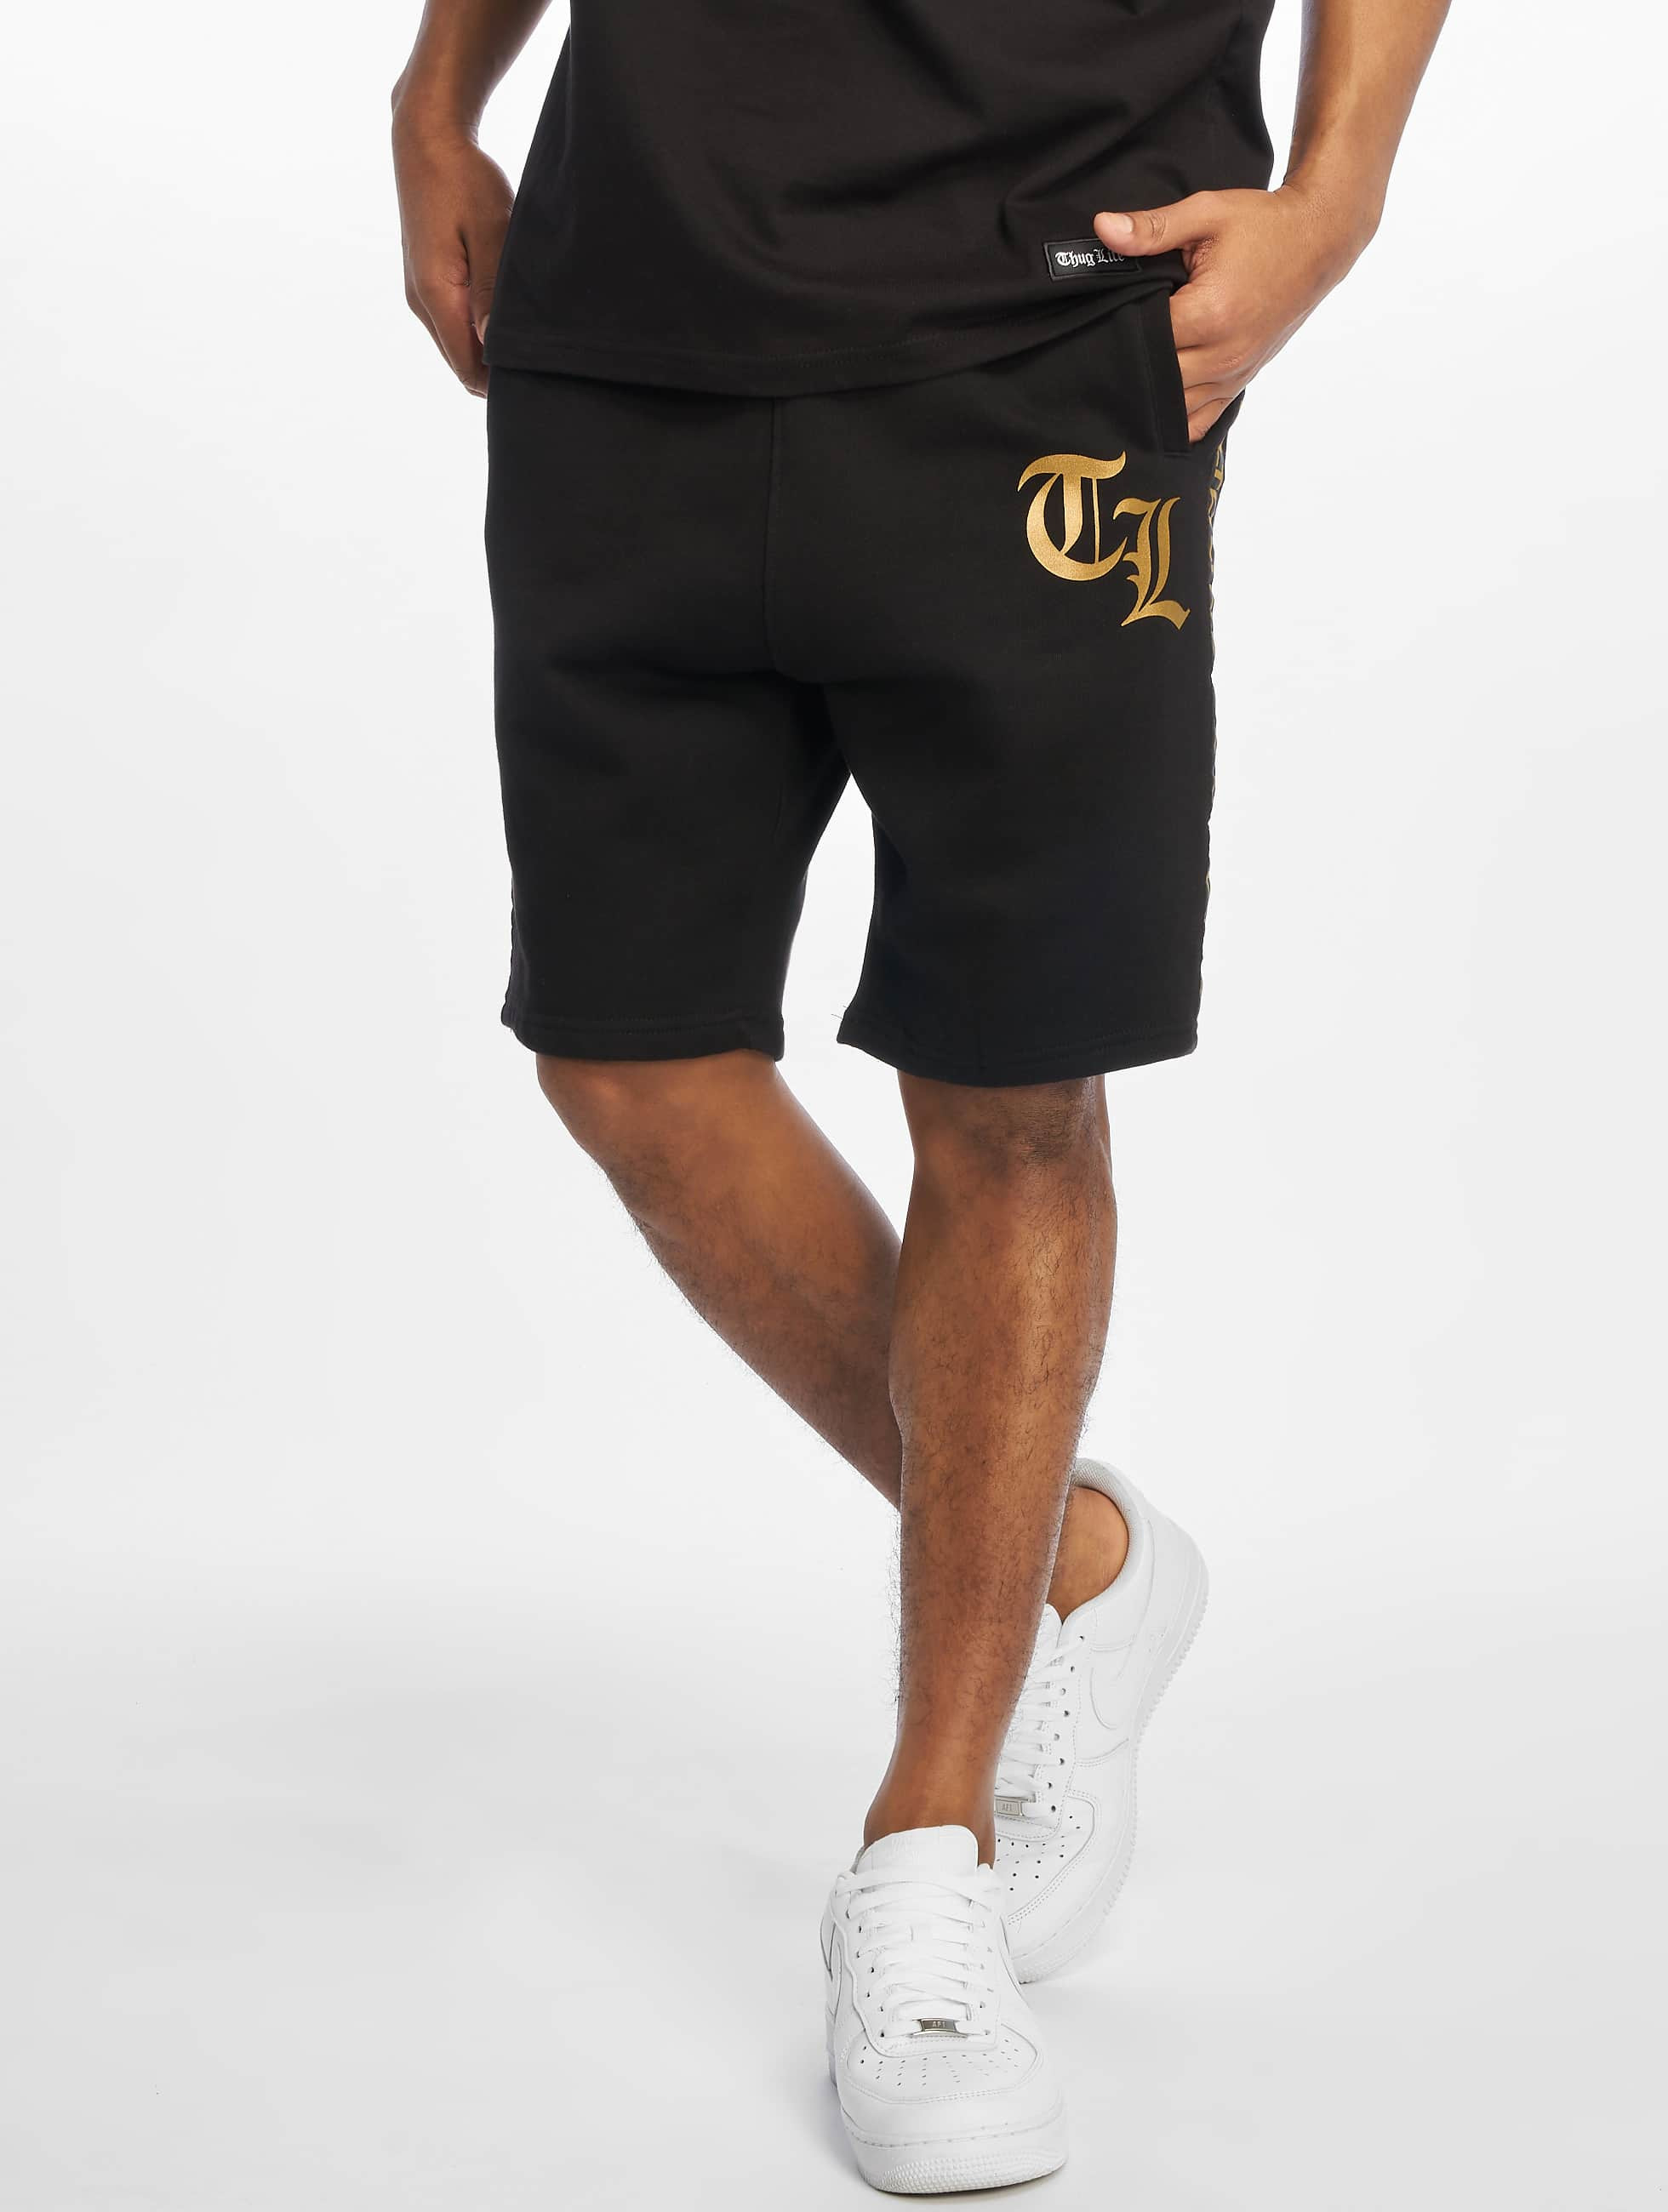 Thug Life / Short Dize in black XL